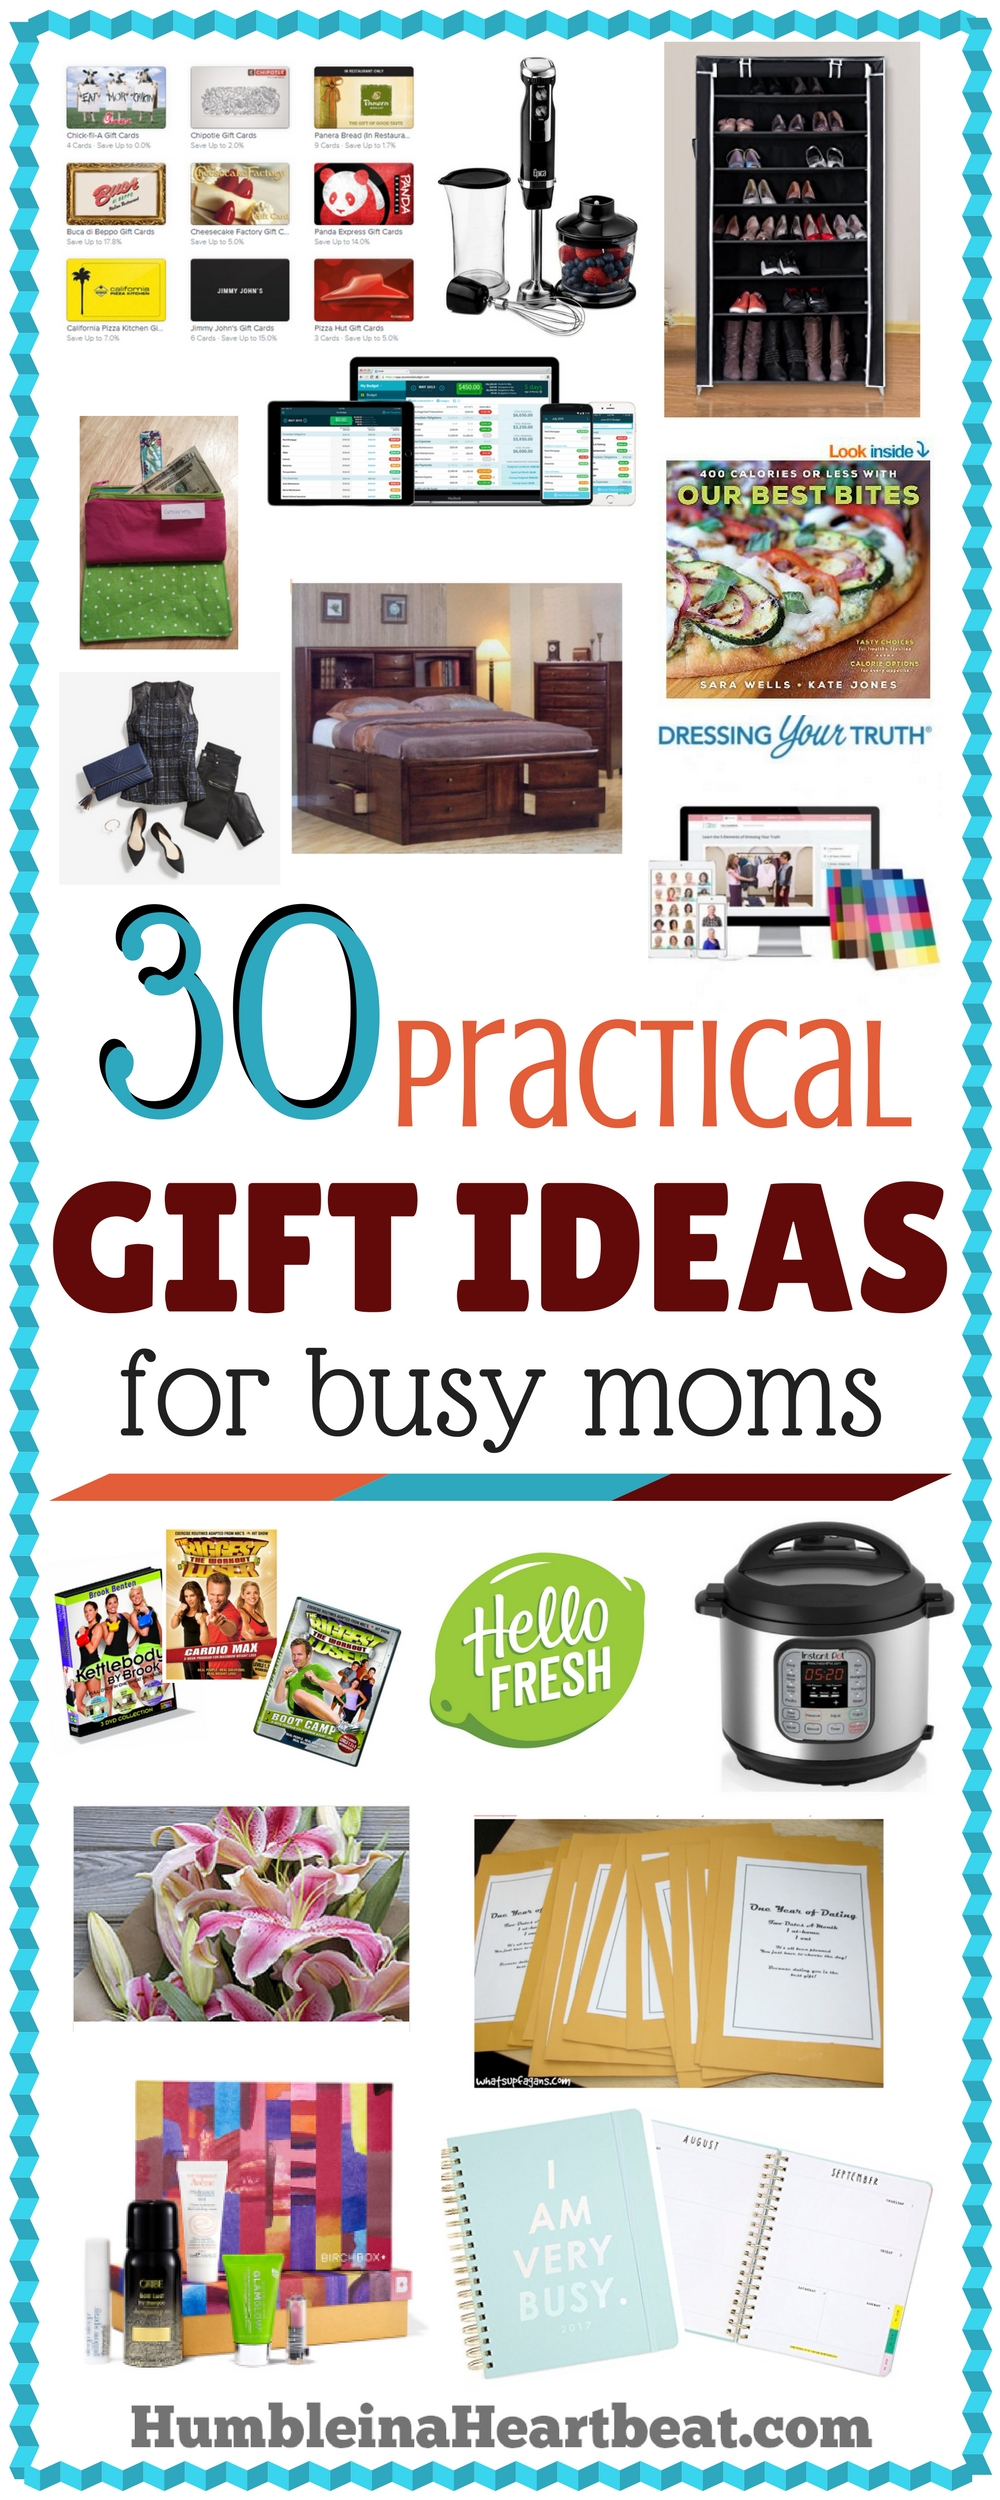 Perfect Christmas Gift For Wife.The Ultimate Gift Guide For Practical Busy Moms Feeding